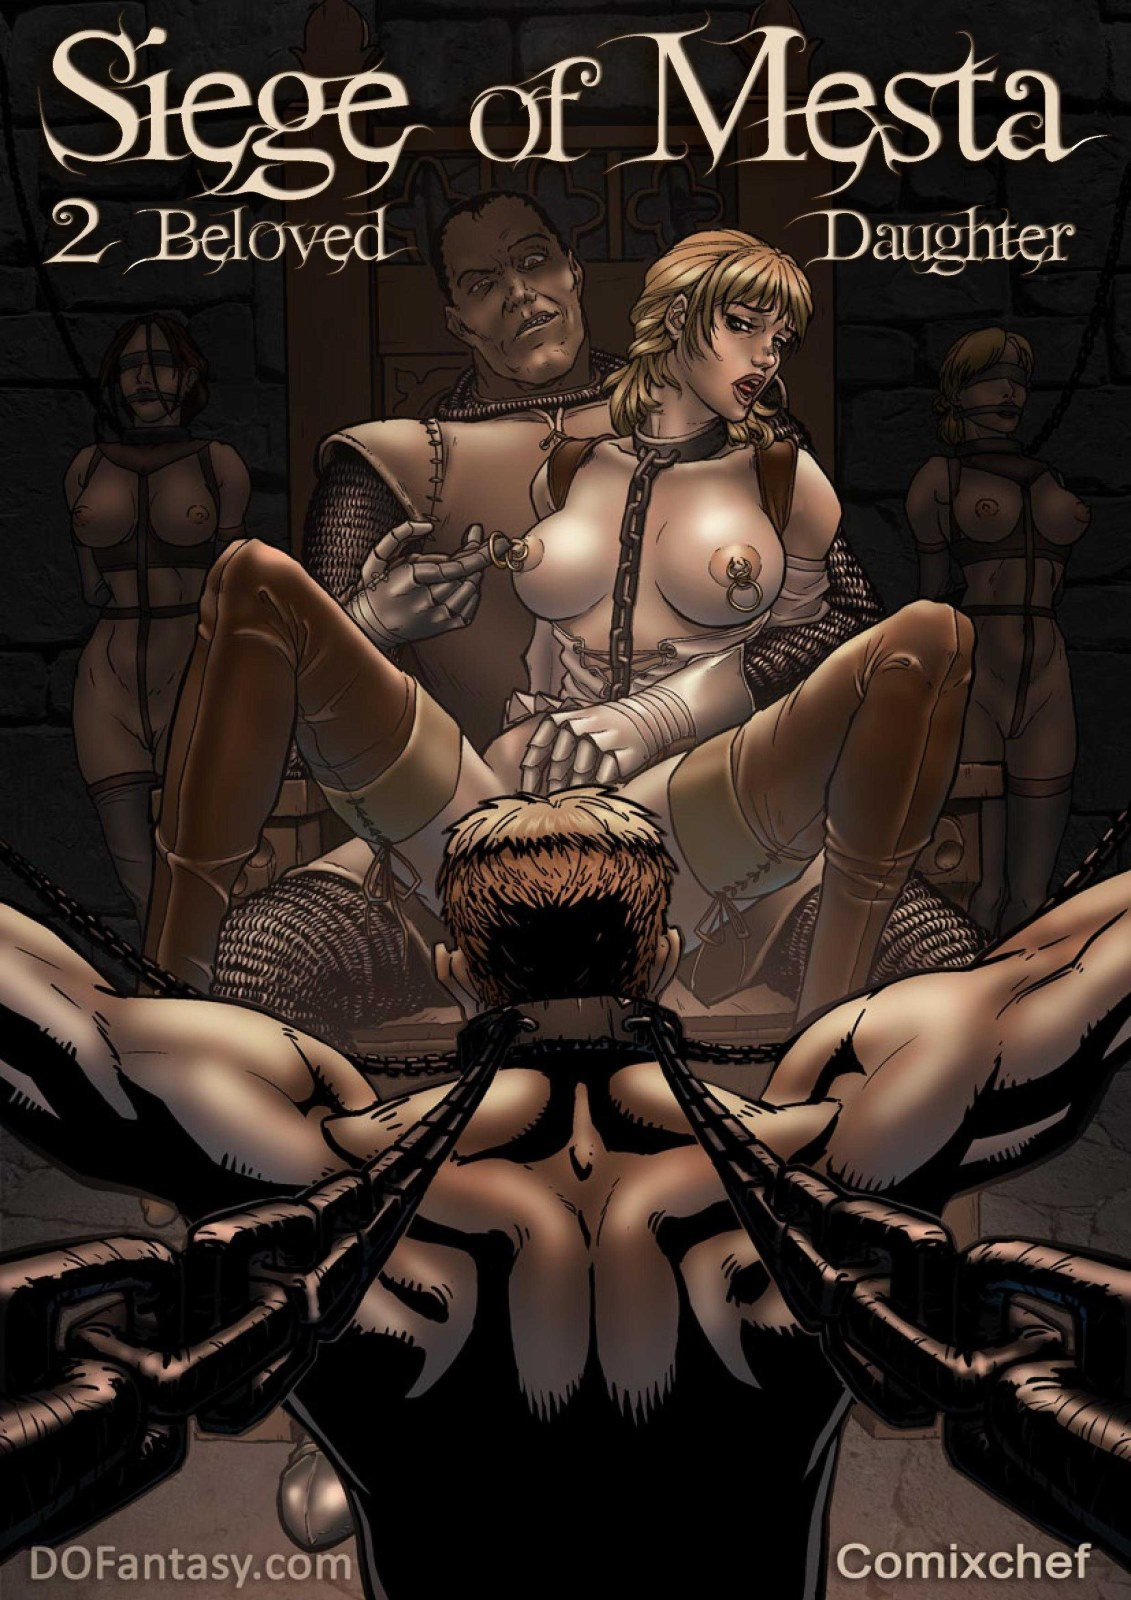 Porn Comics - Siege of Mesta 2- Beloved Daughter porn comics 8 muses